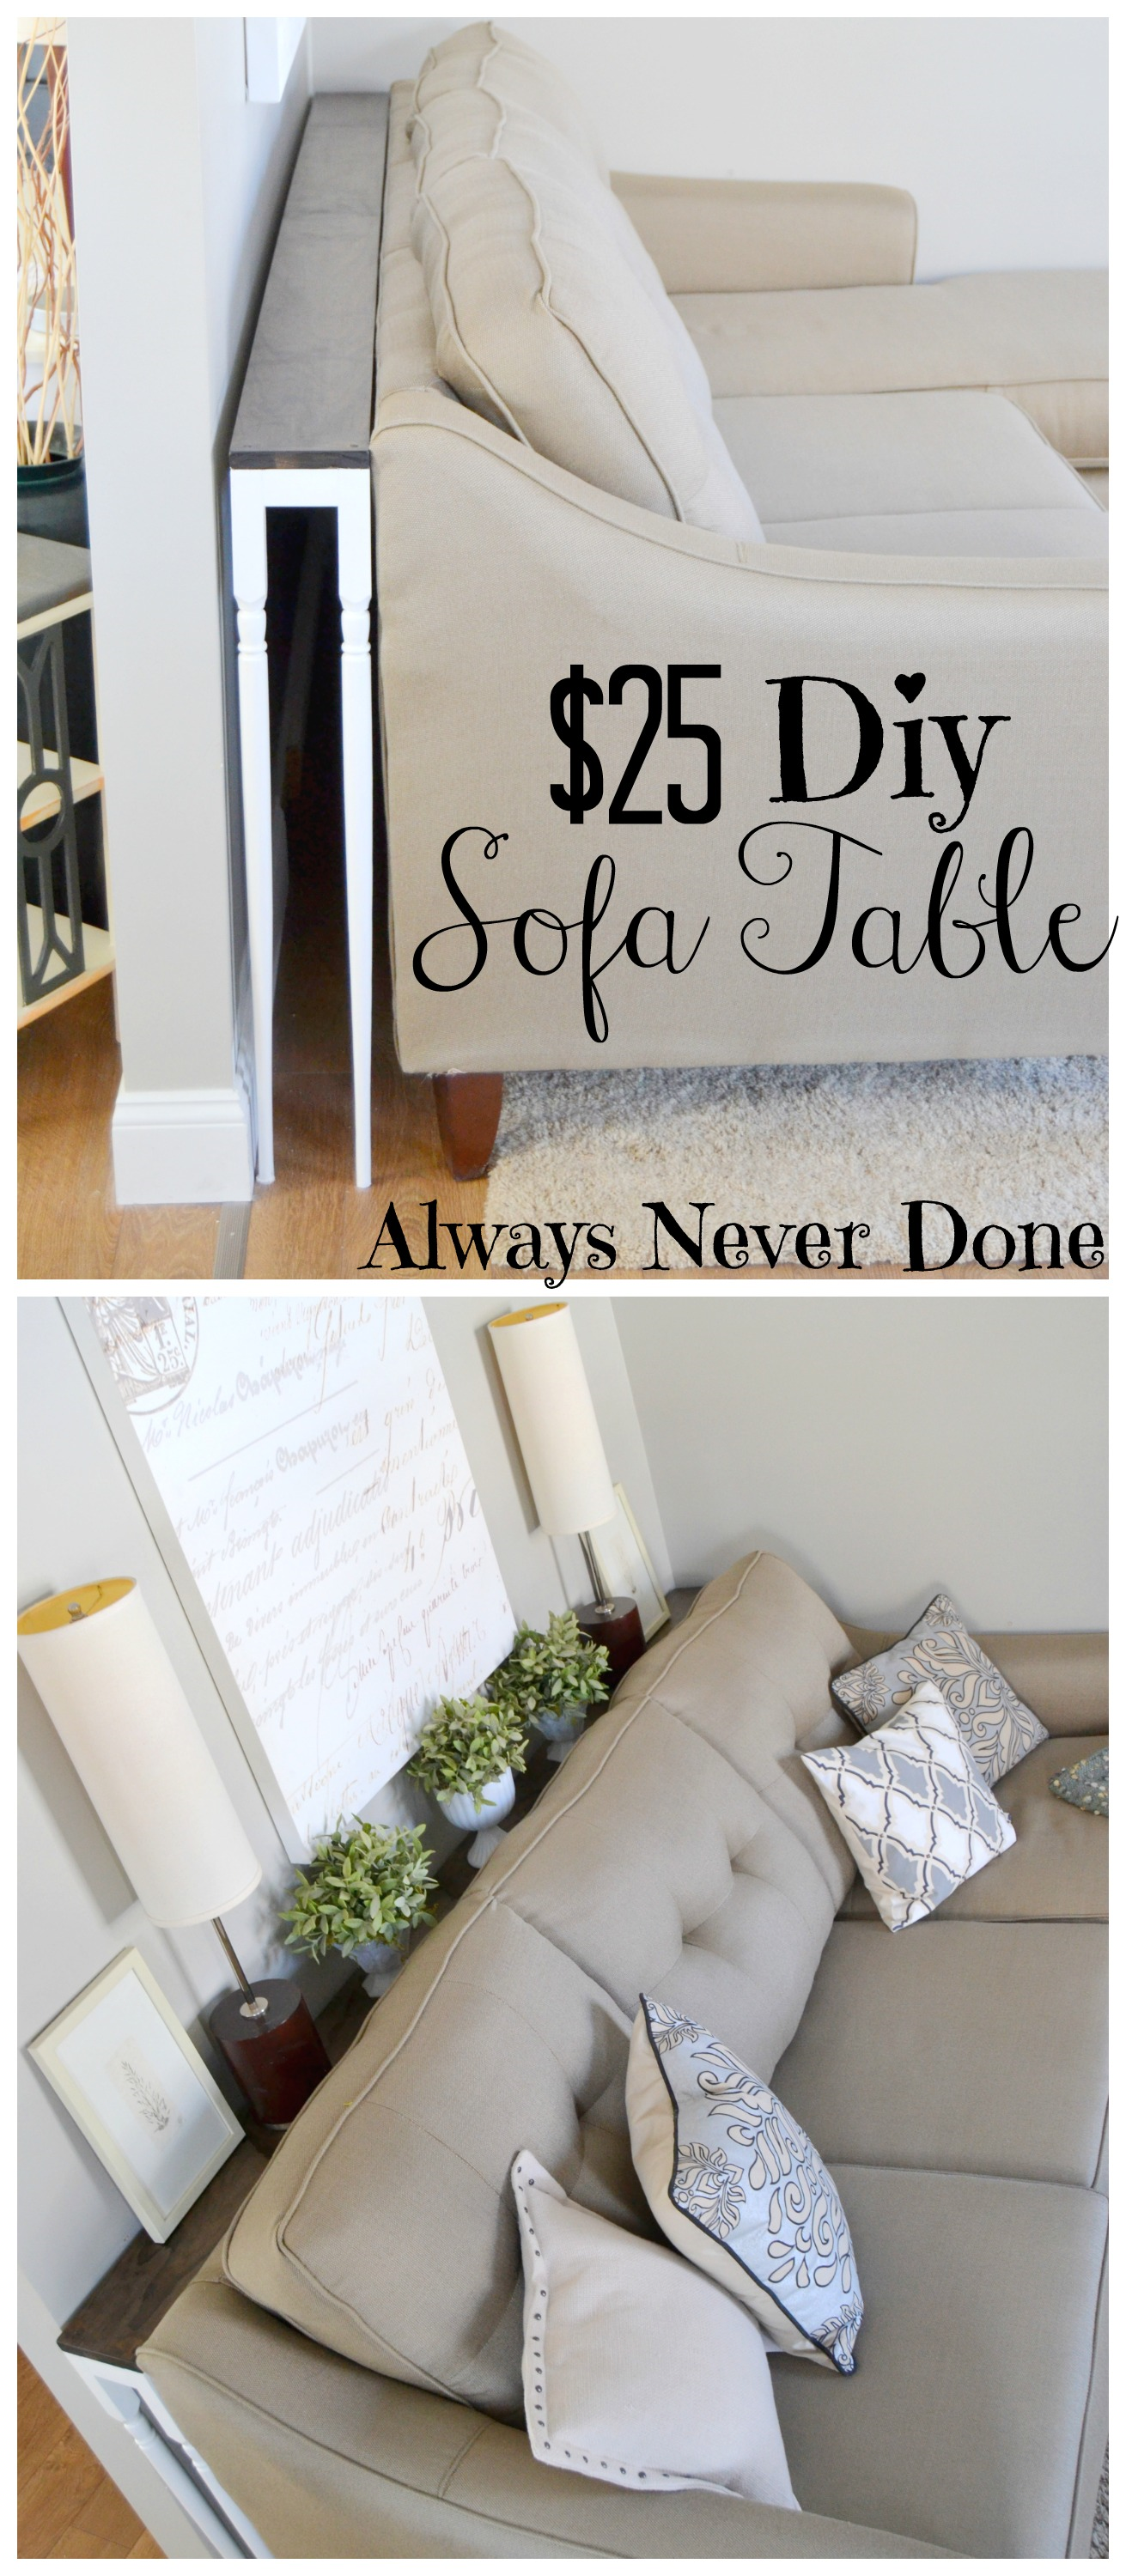 DIY Sofa Table for $25 using stair rails as legs I love this ides